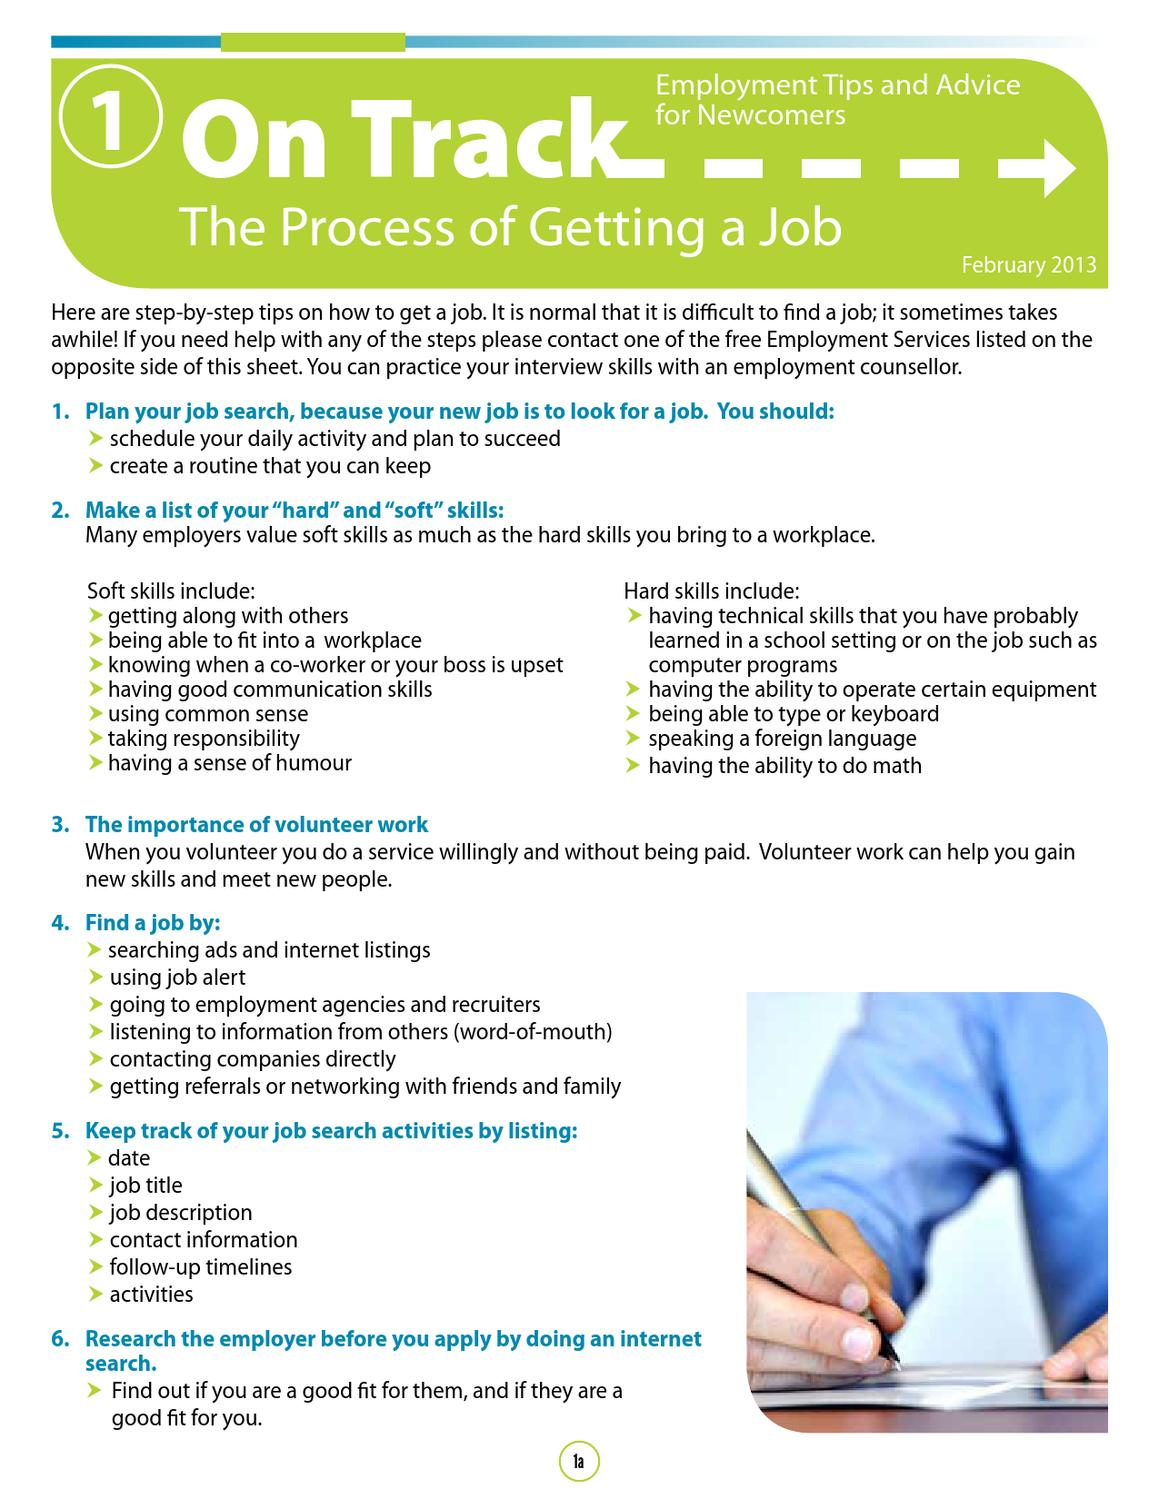 on track employment tips and advice for newcomers workforce ontrack eng 3 years ago cyndilingle